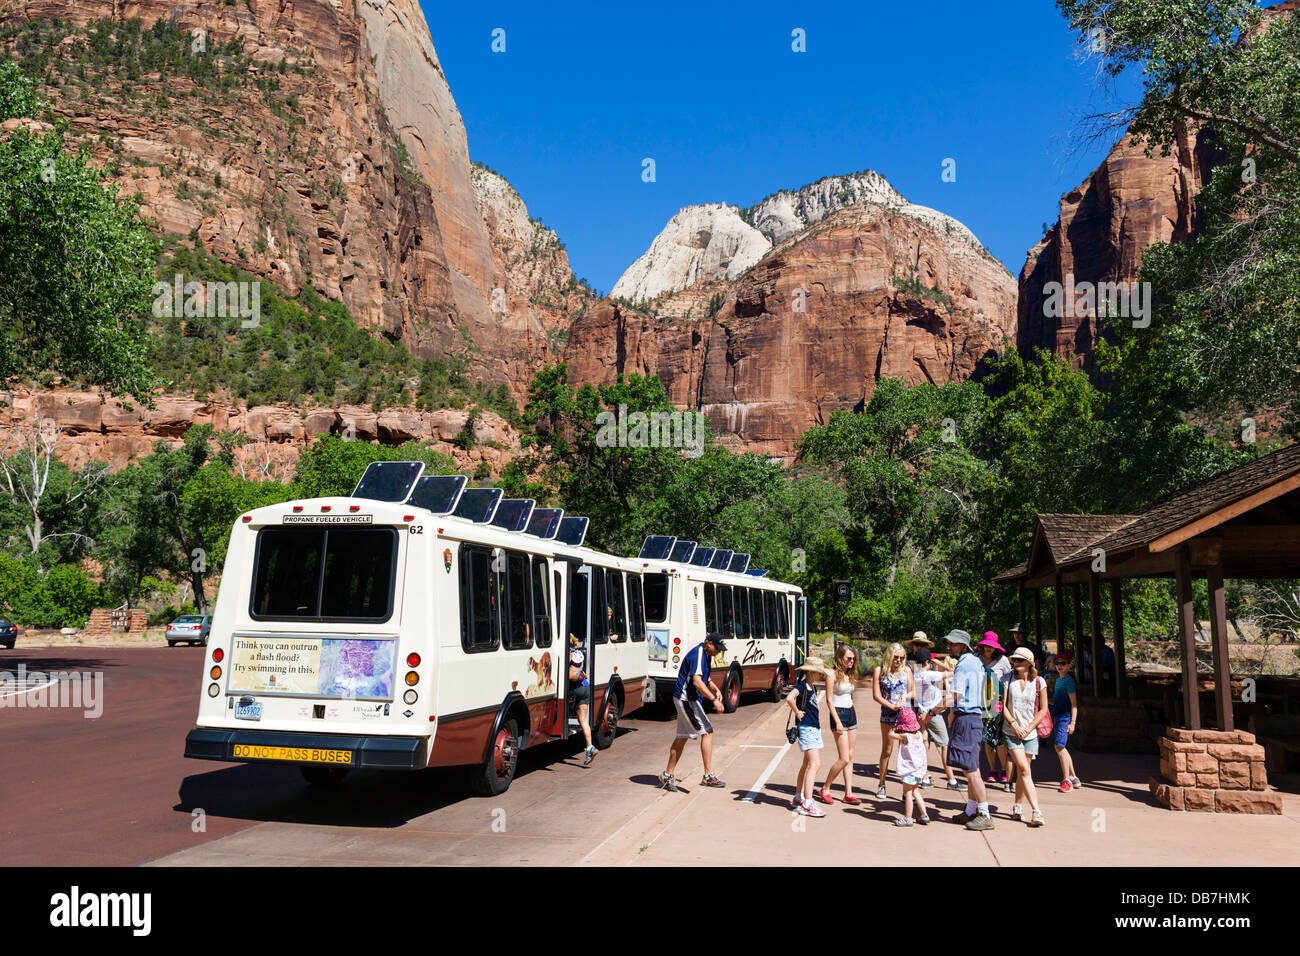 Tourists getting off the shuttle bus at Zion Lodge, Zion Canyon, Zion National Park, Utah, USA - Stock Image